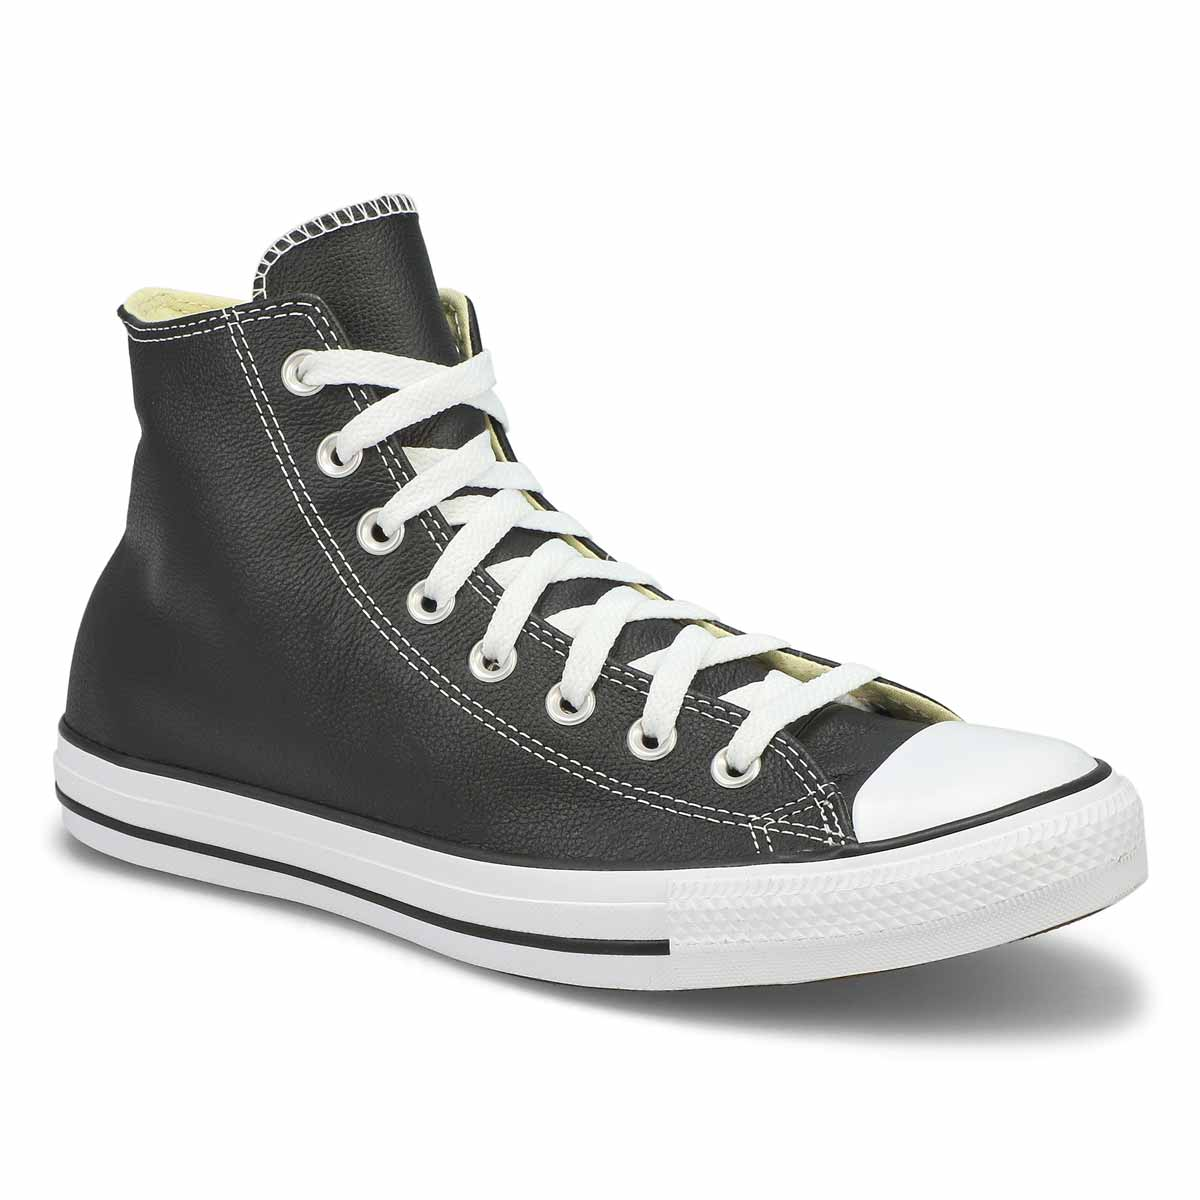 Espad CT All Star Leather, noir, ho